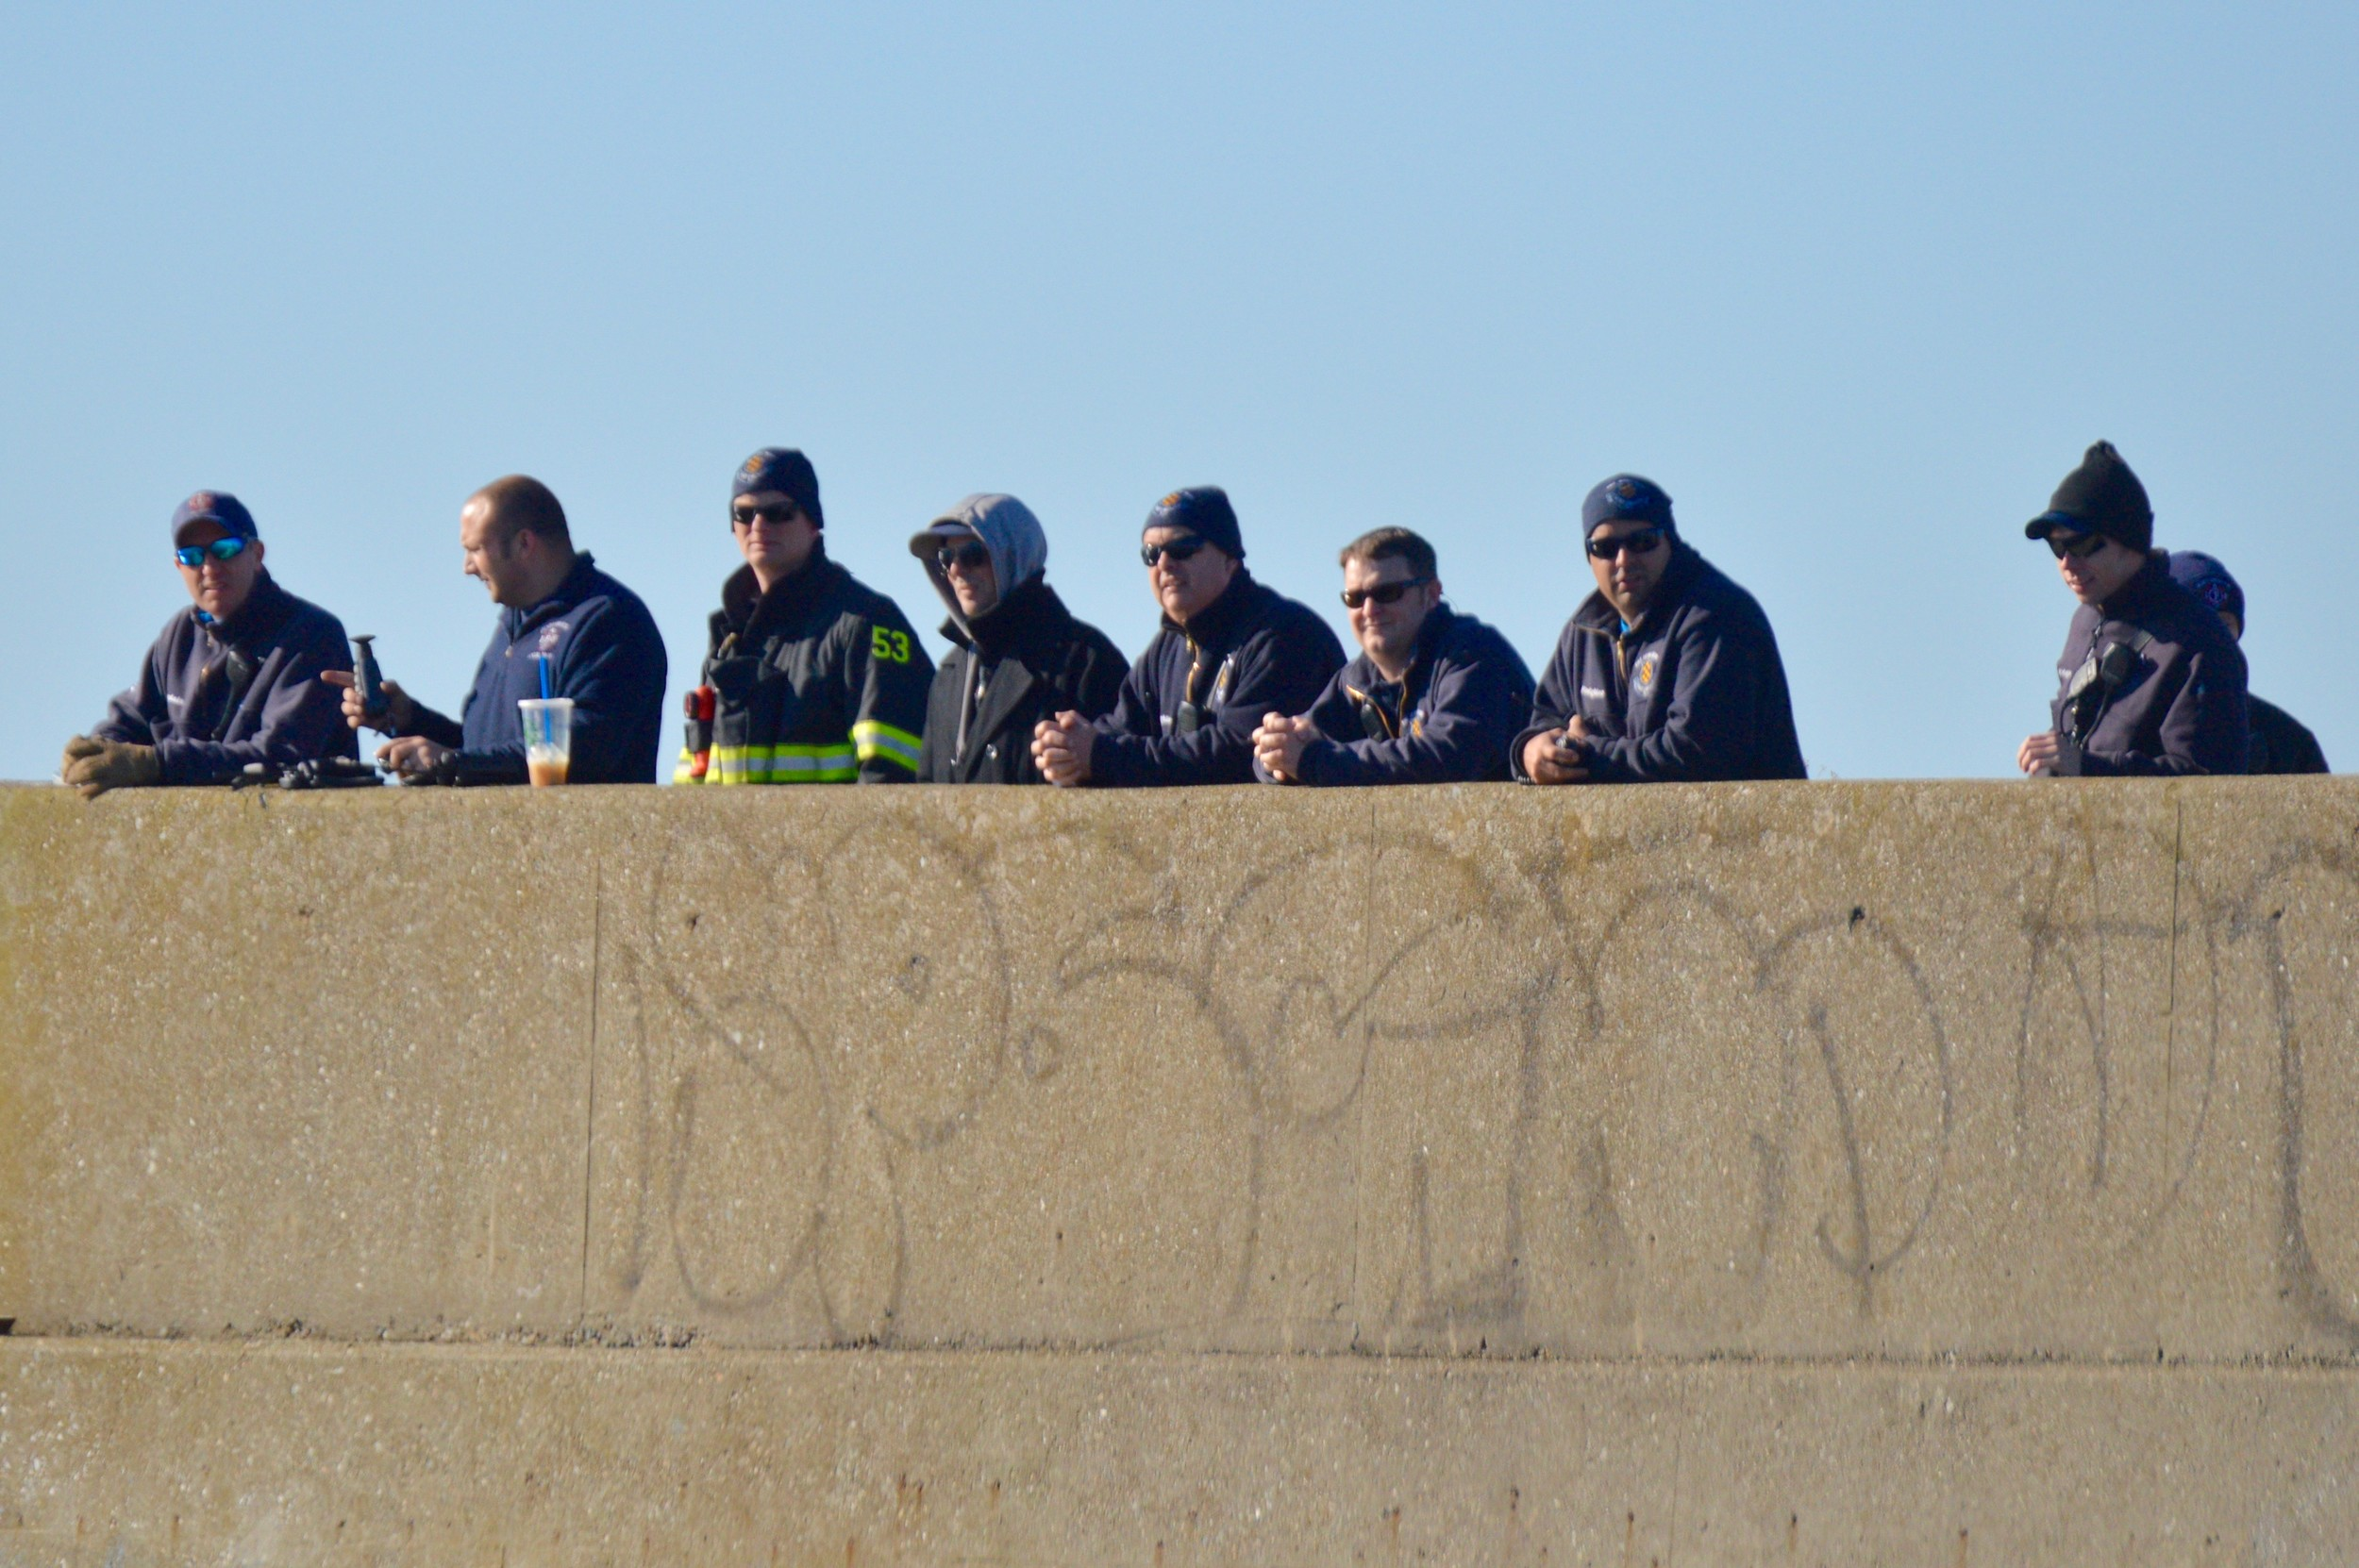 First responders observe the rescue drill from the end of the Portsmouth side of the Stone Bridge abutment.